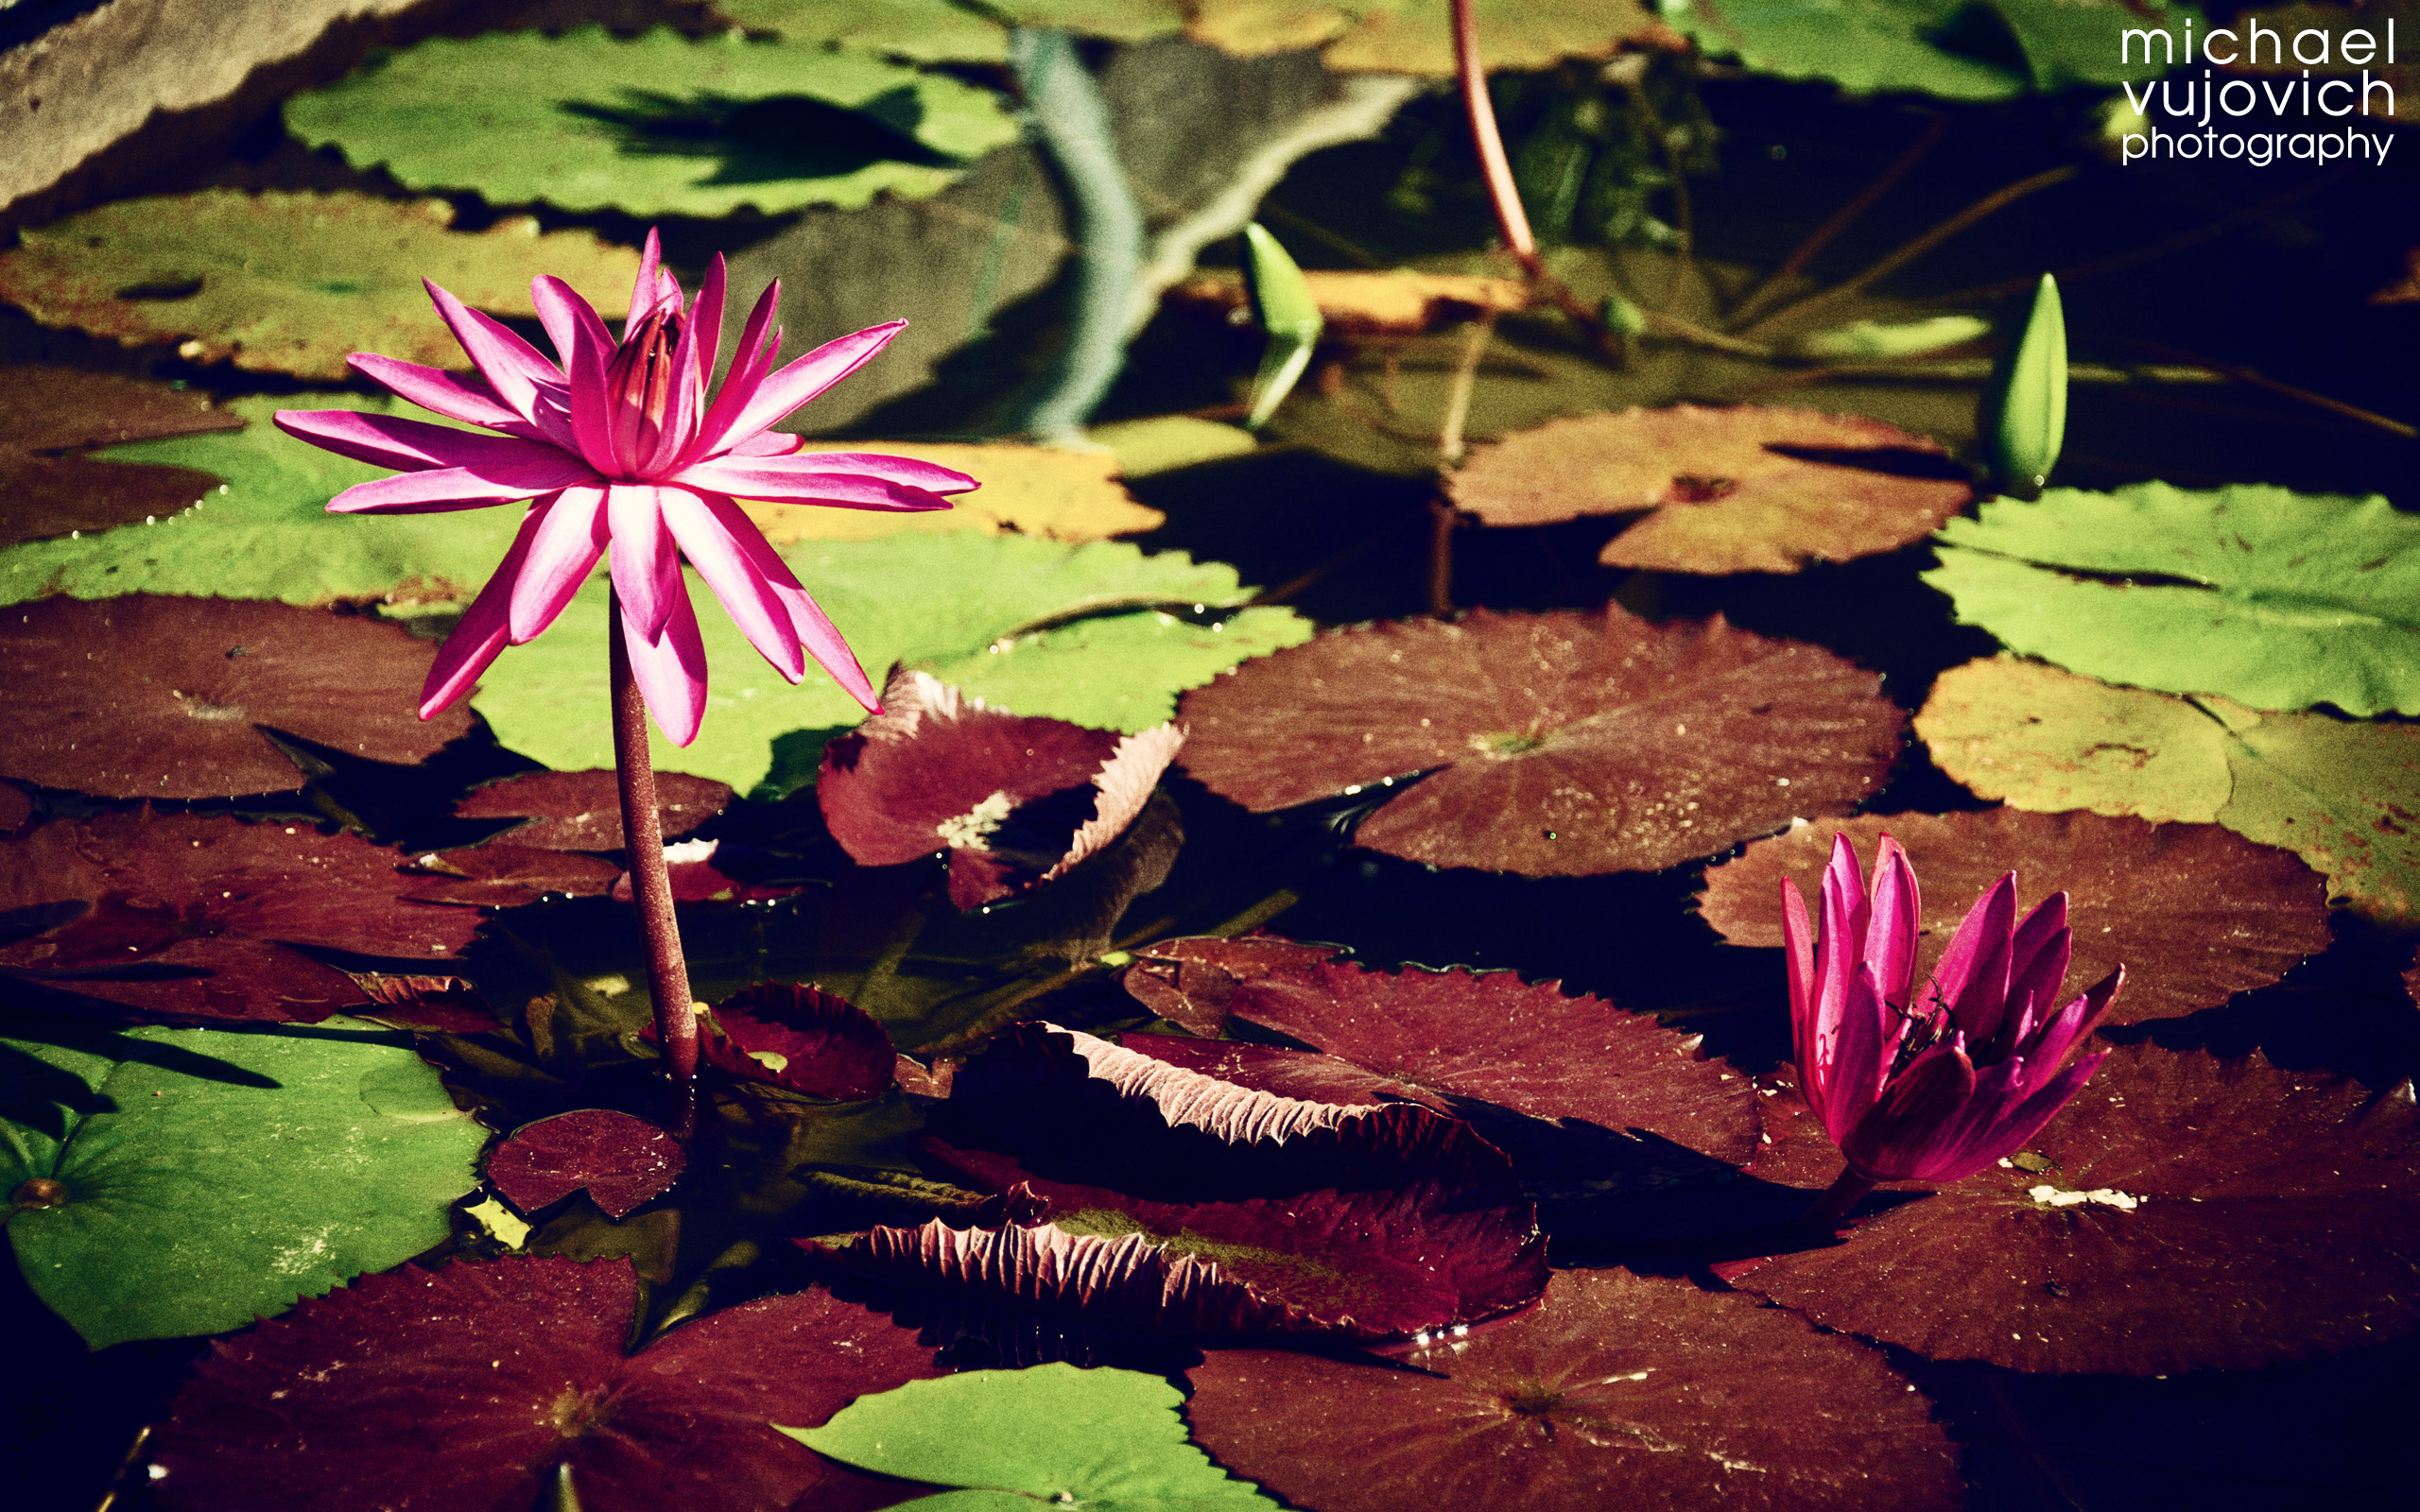 Water Lily Bloom in Water Garden (June 2013 Desktop Background)